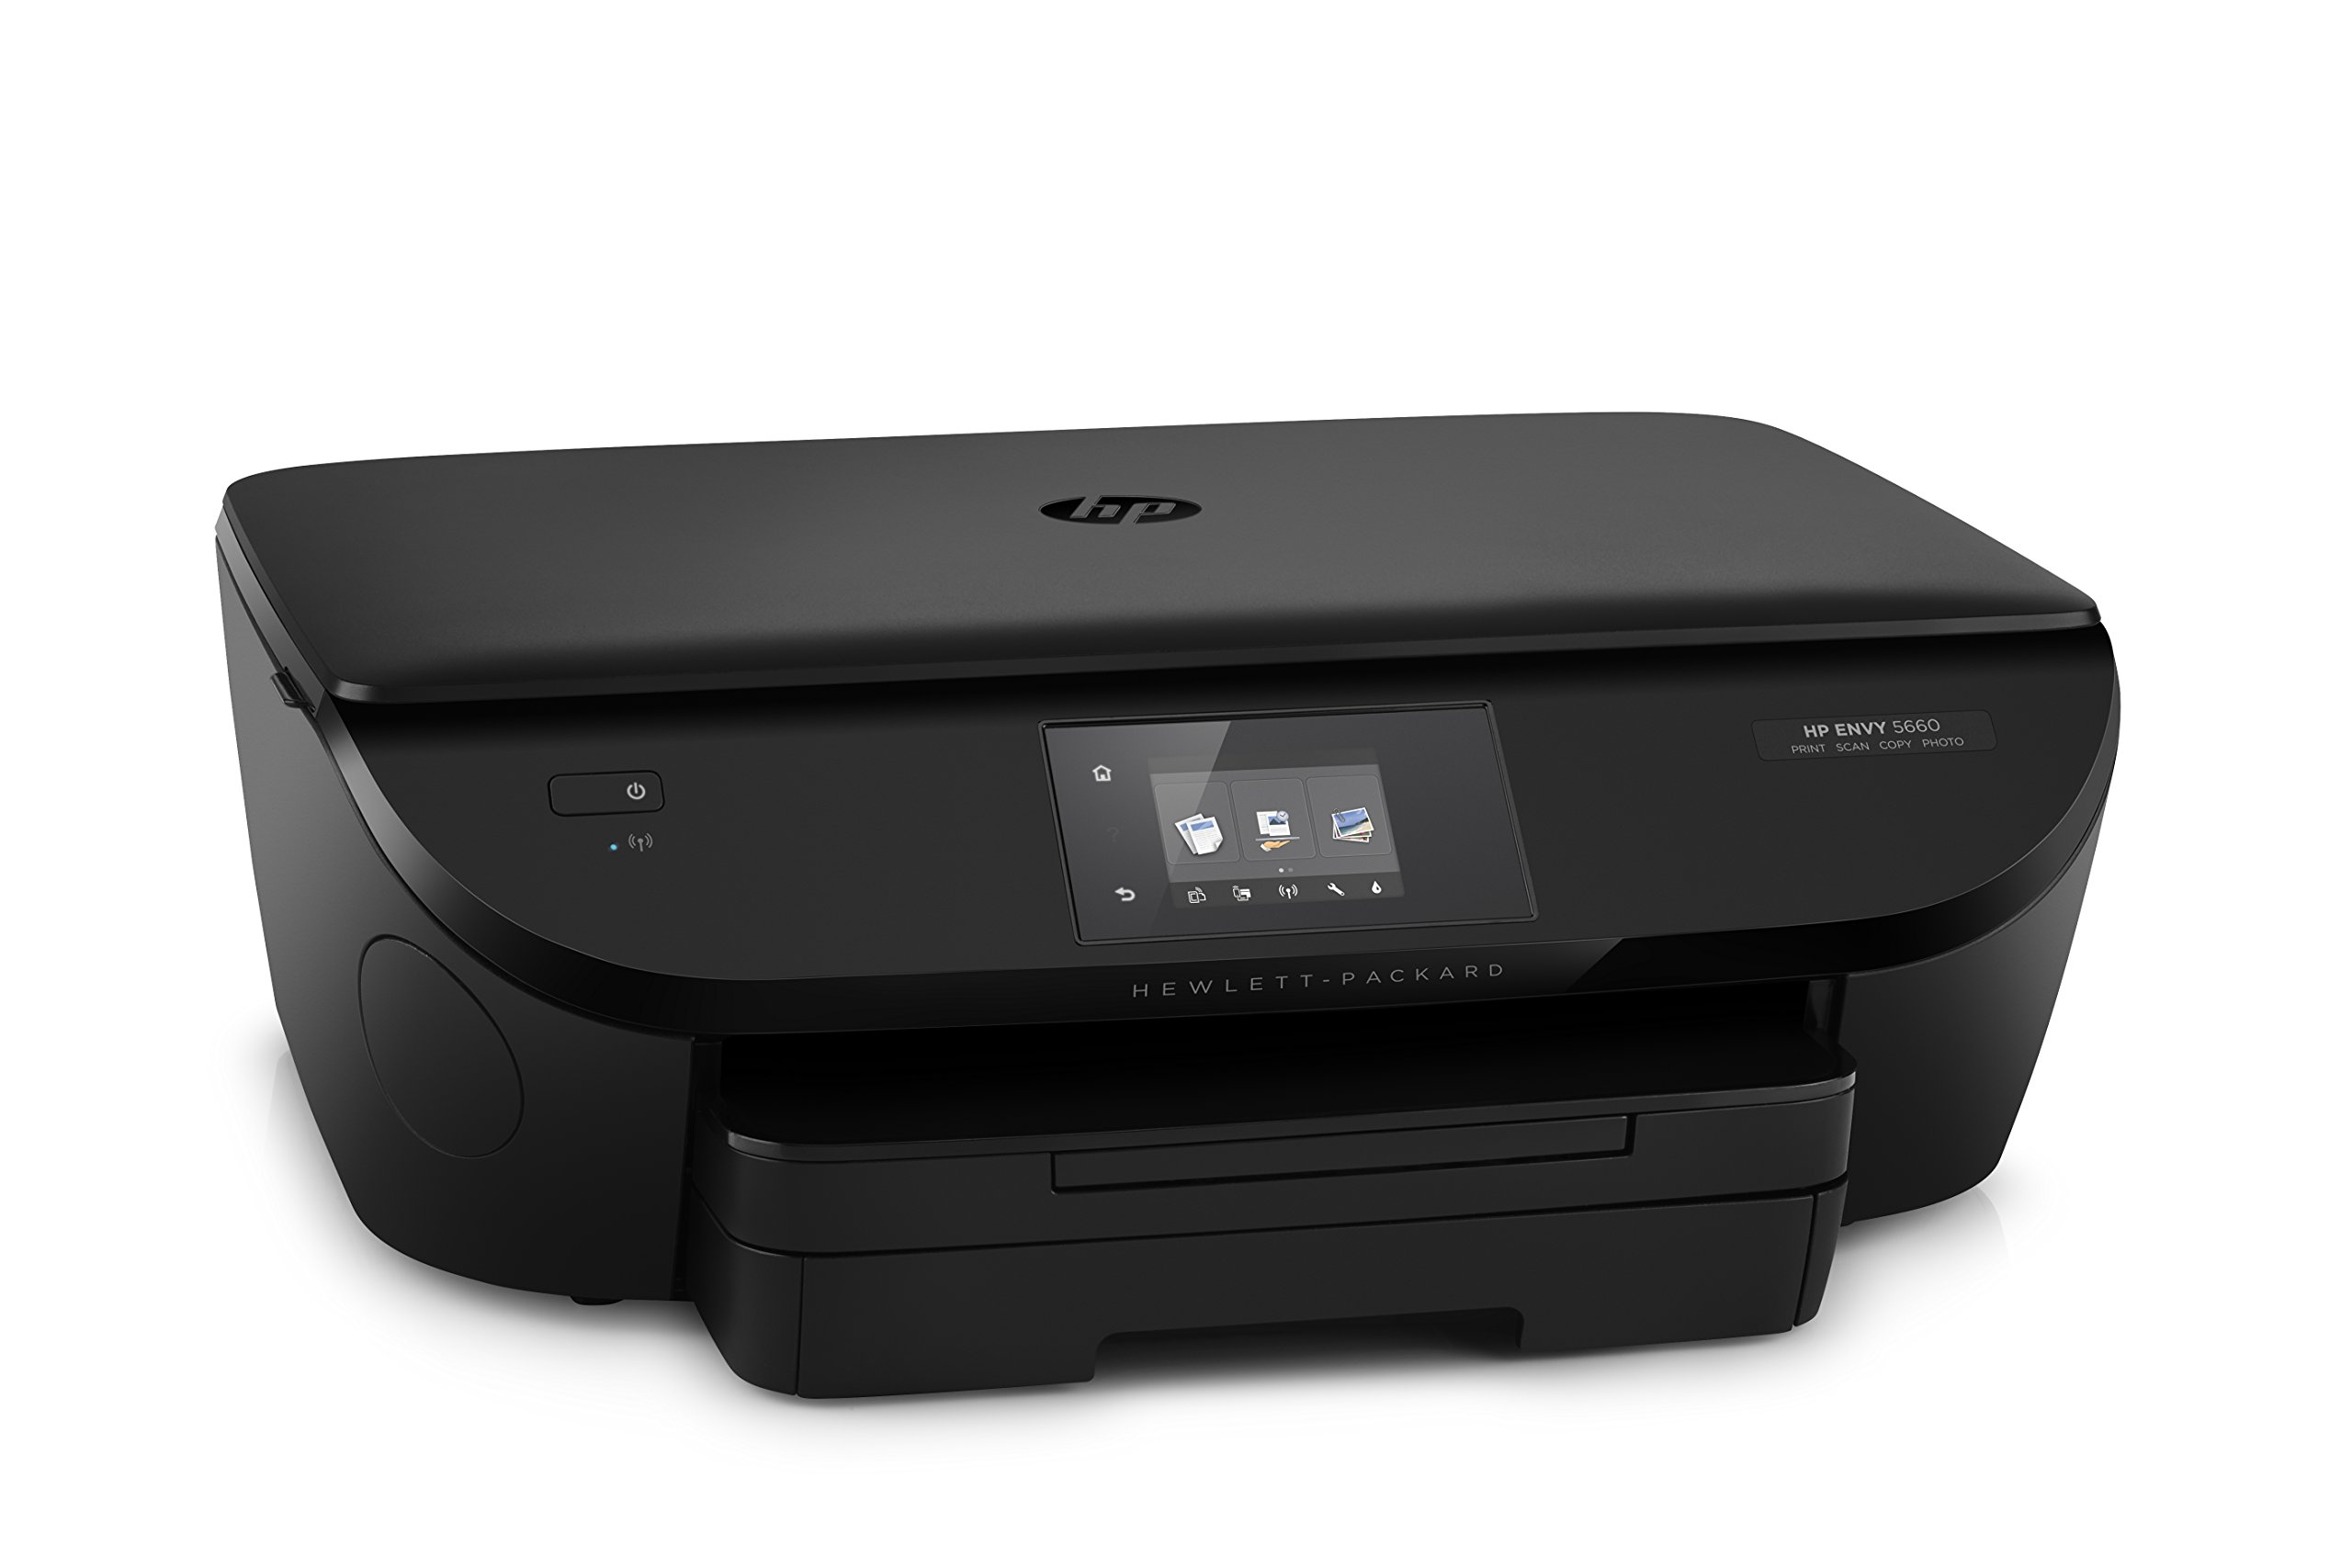 HP Envy 5660 Wireless All-in-One Photo Printer with Mobile Printing, Instant Ink Ready (F8B04AR) (Renewed) by HP (Image #2)